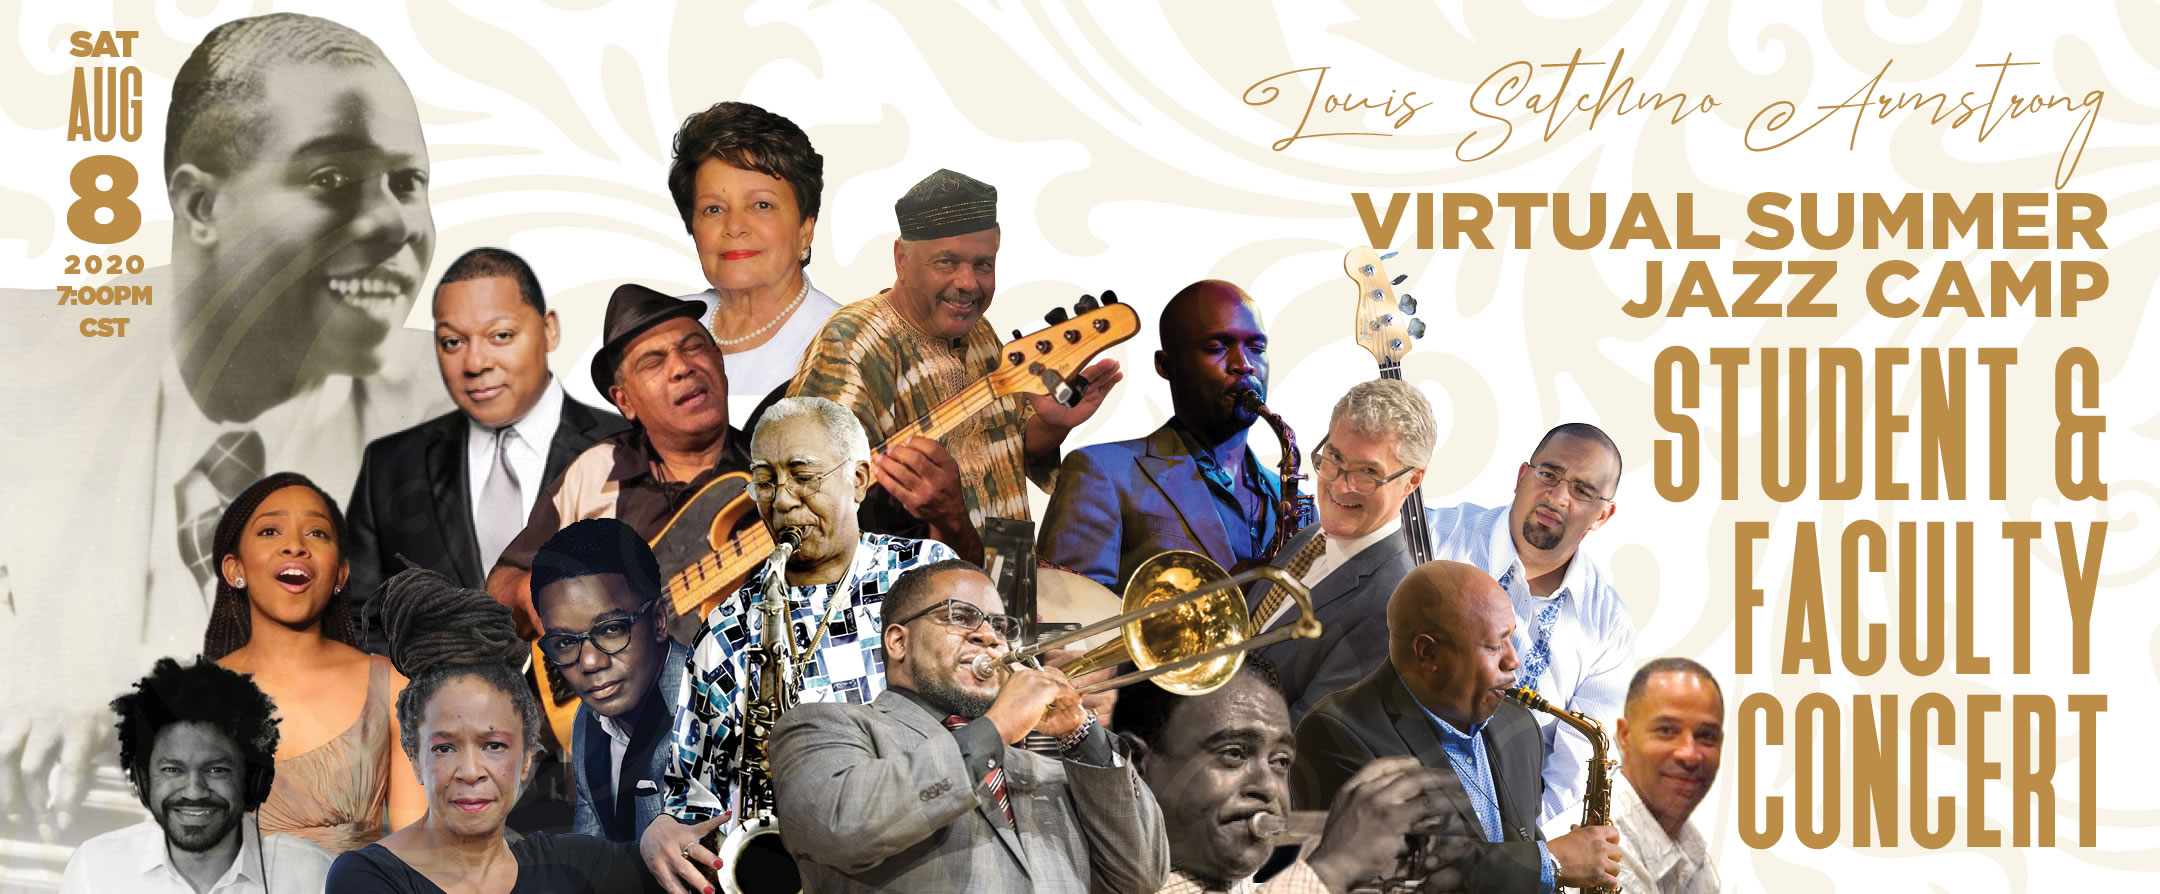 Virtual Summer Jazz Camp Student & Faculty Concert